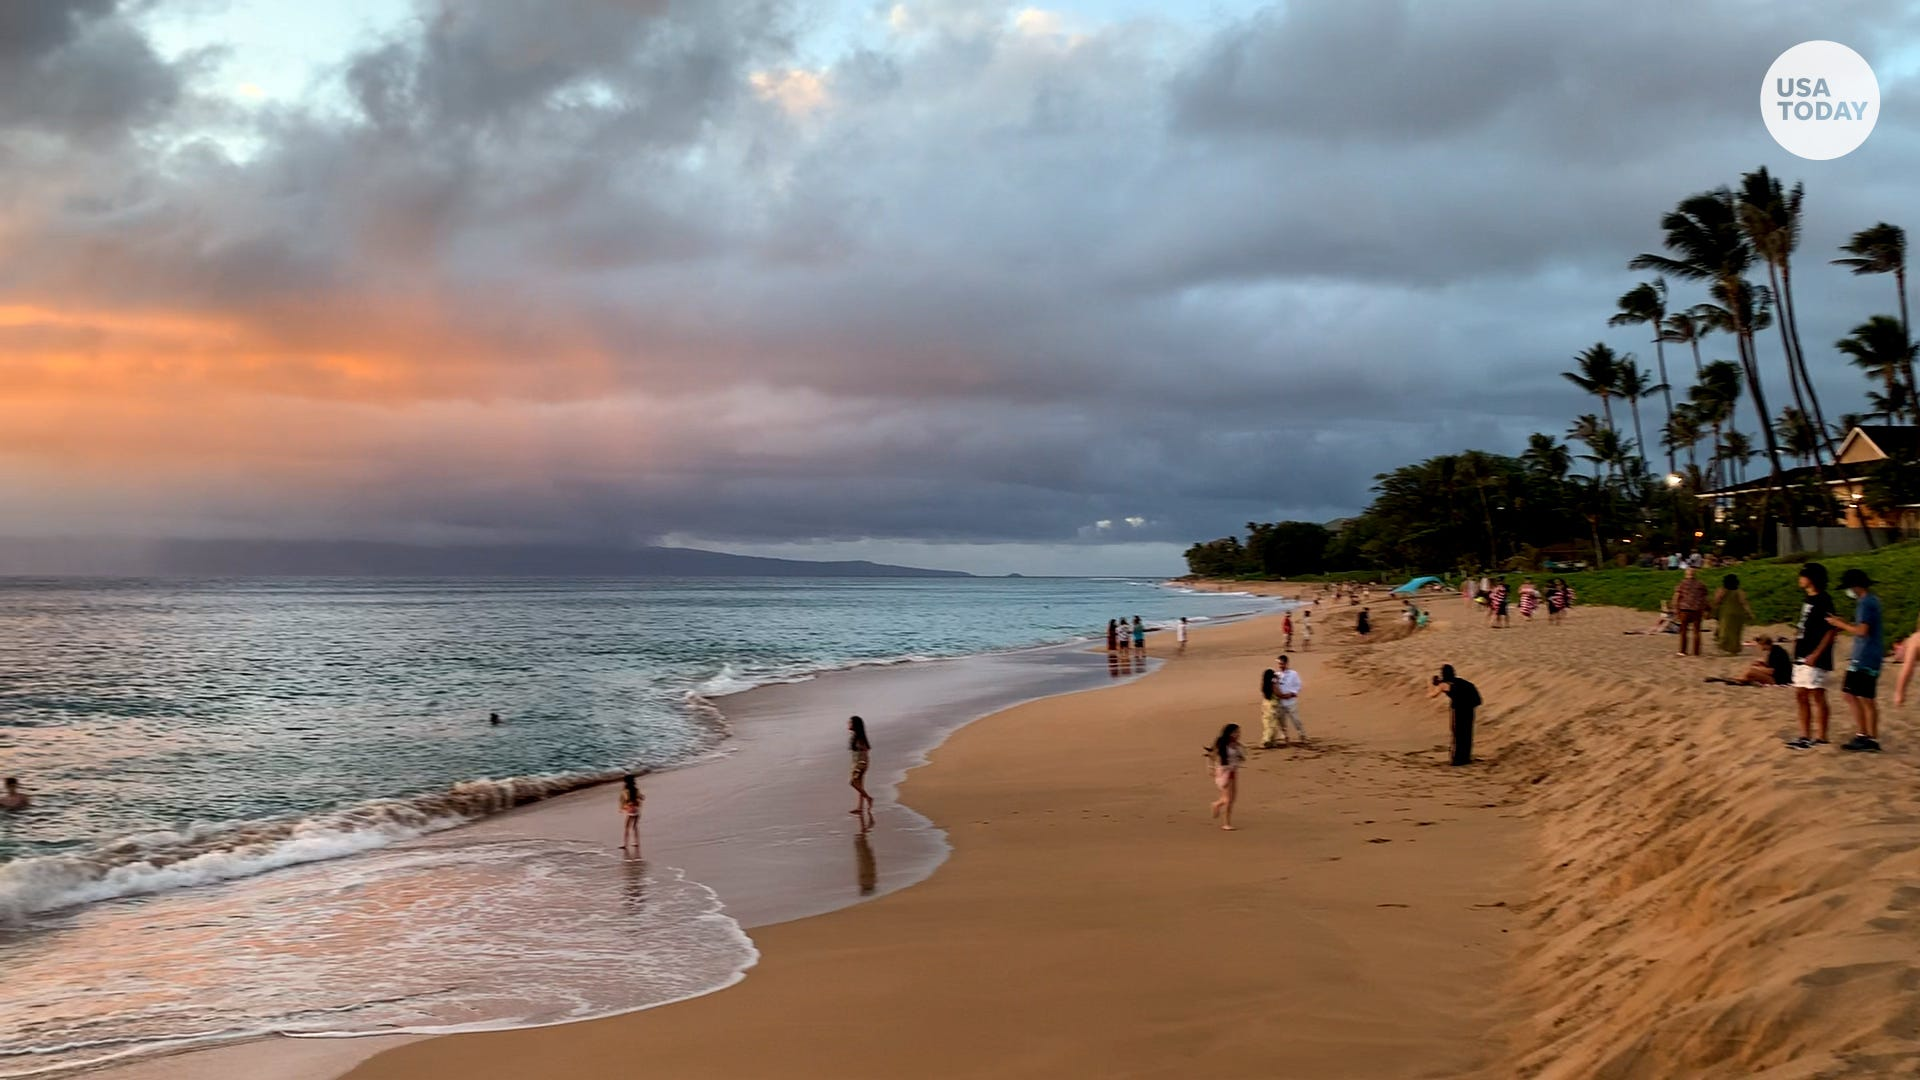 a group of people on a beach near a body of water: 4 (tie). Maui, Hawaii:83%increase in demand